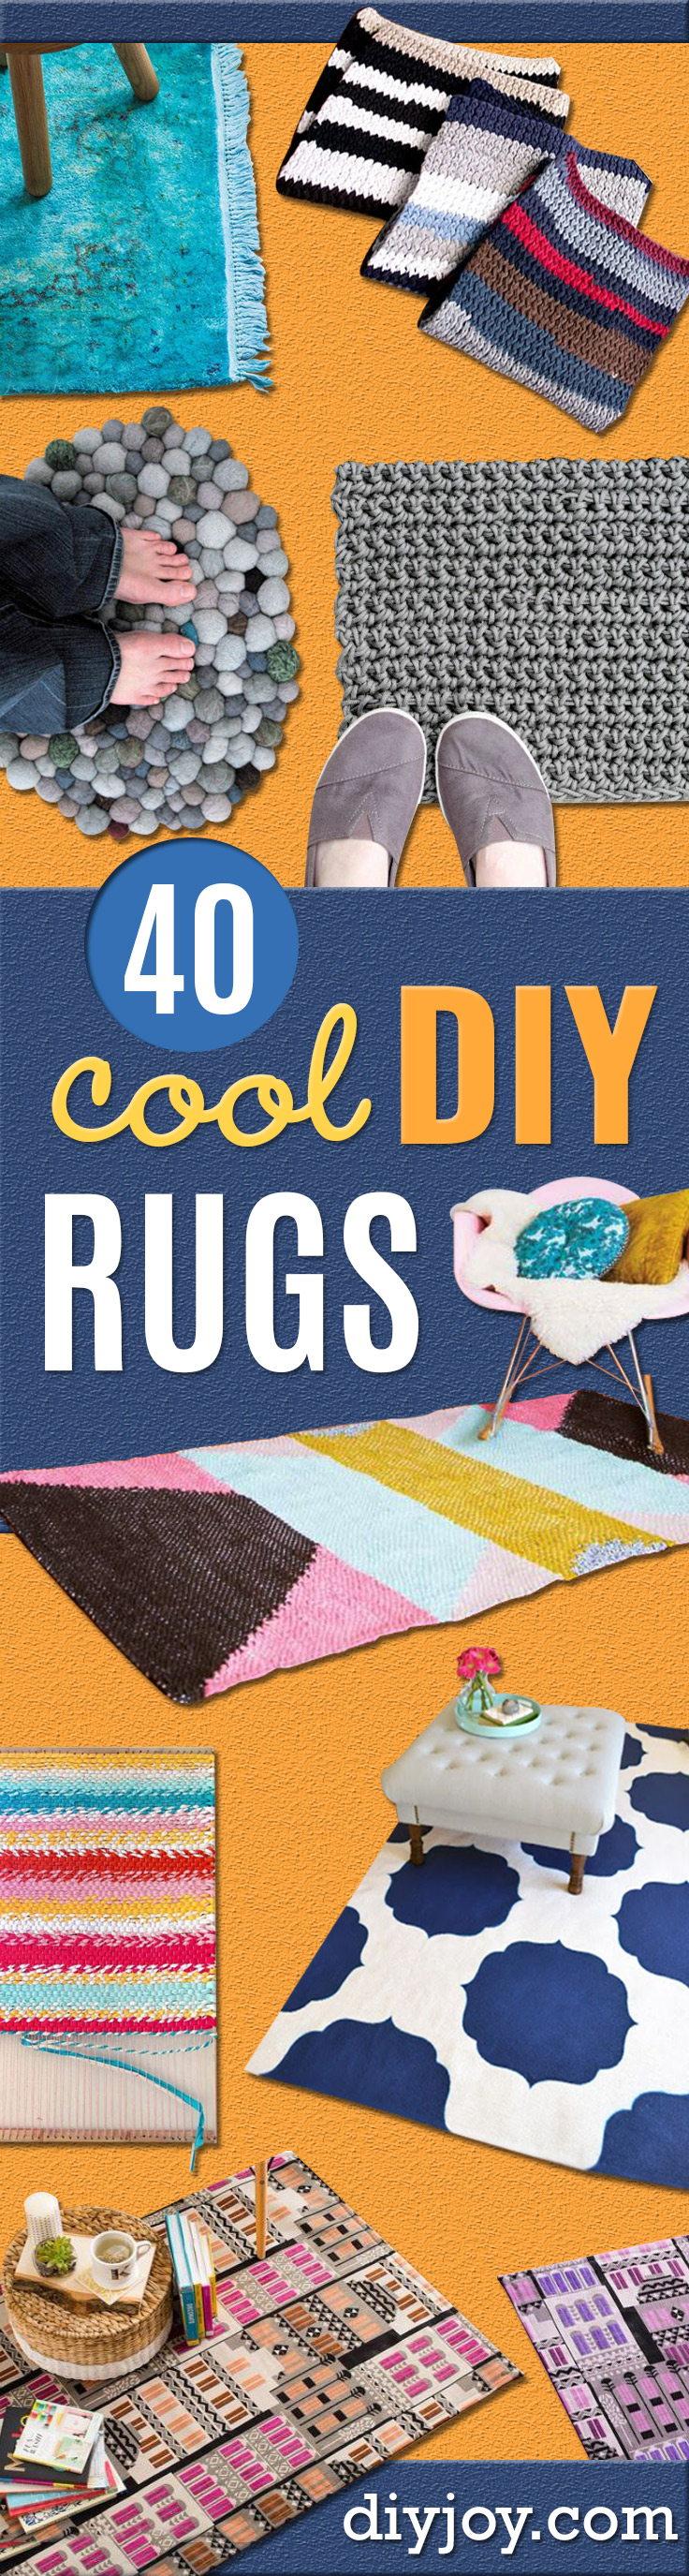 DIY Rugs - Ideas for An Easy Handmade Rug for Living Room, Bedroom, Kitchen Mat and Cheap Area Rugs You Can Make - Stencil Art Tutorial, Painting Tips, Fabric, Yarn, Old Denim Jeans, Rope, Tshirt, Pom Pom, Fur, Crochet, Woven and Outdoor Projects - Large and Small Carpet http://diyjoy.com/diy-rug-tutorials